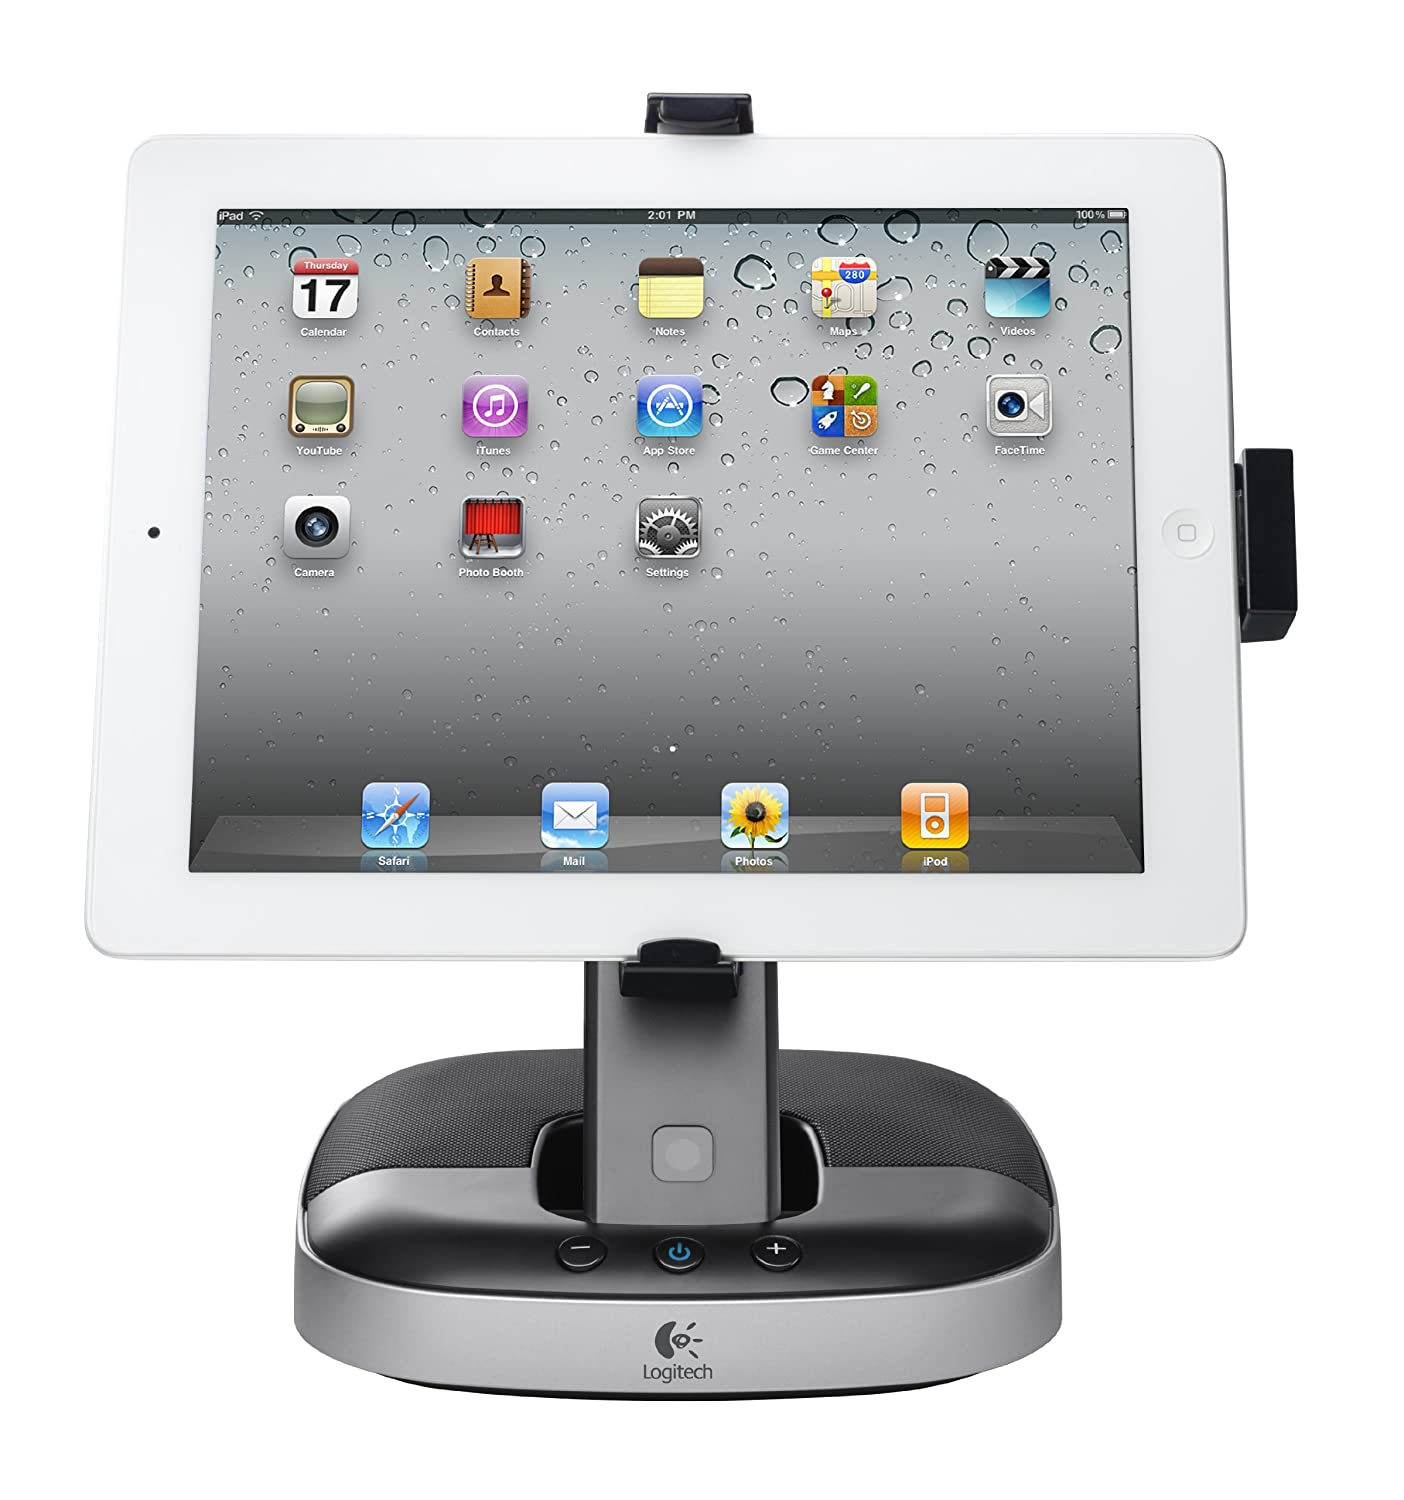 b51f0ebc63 Amazon.com  Logitech Speaker Stand with Charging Station for iPad   Computers   Accessories